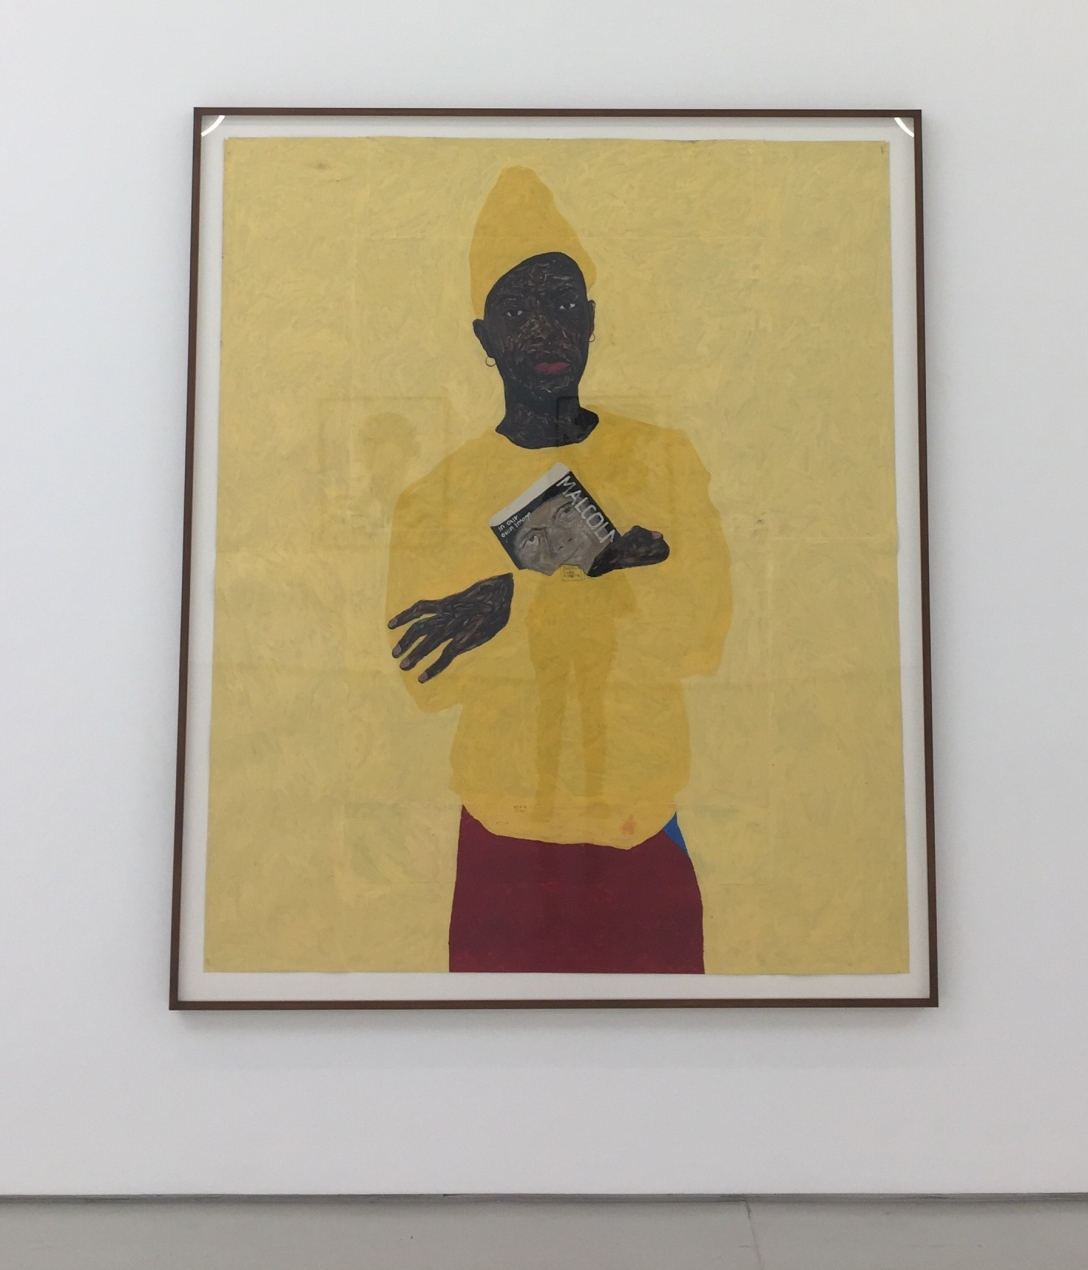 Amoako Boafo, In Yellow with Malcolm, 2018